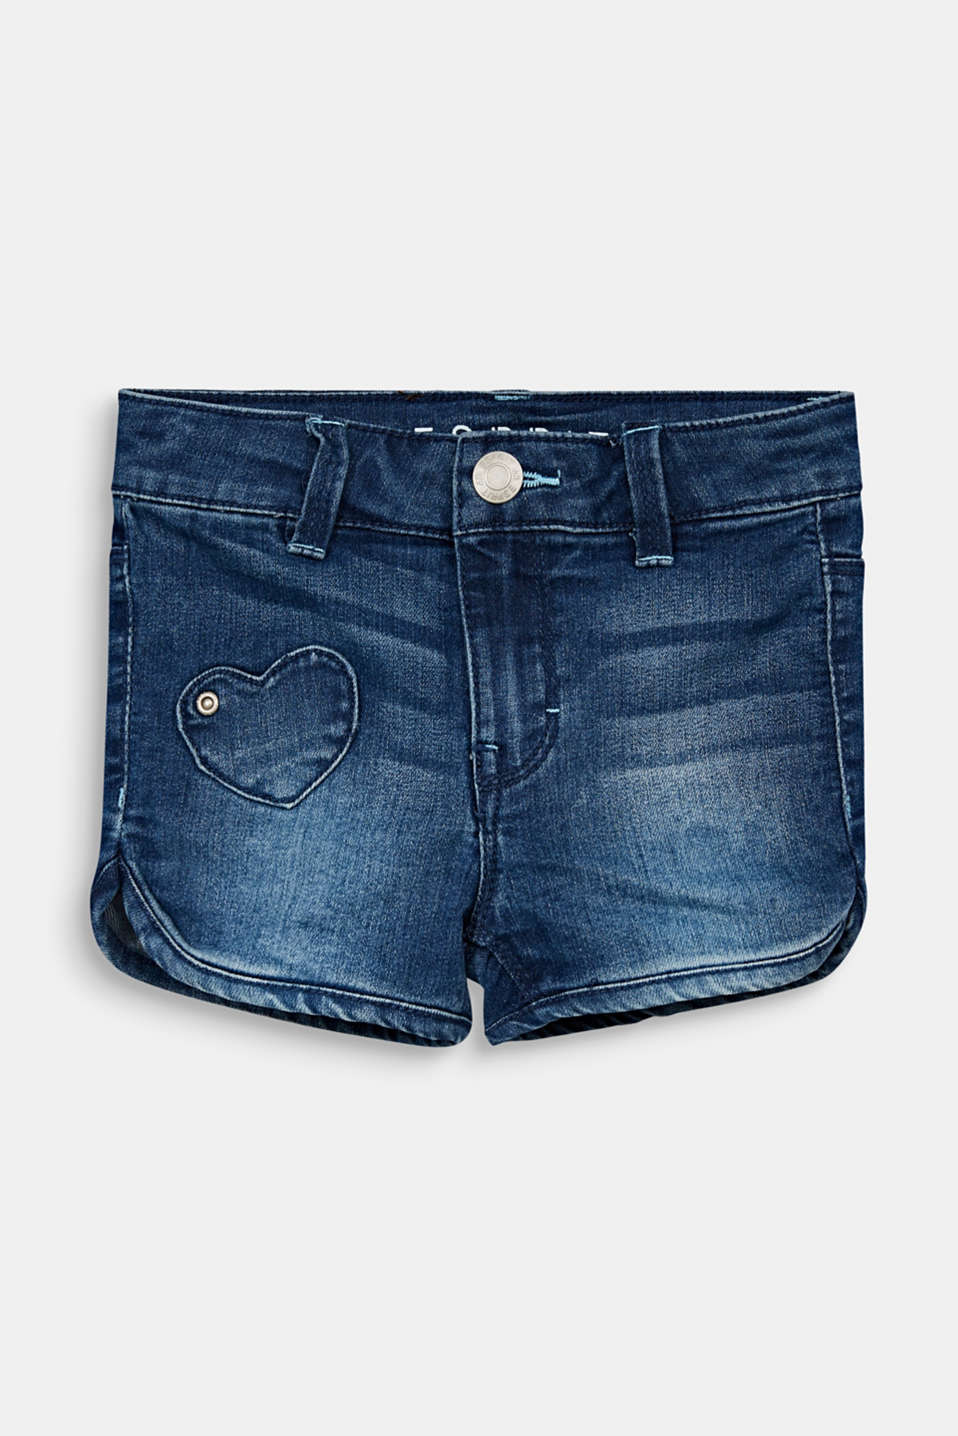 Esprit - Jeans-Shorts mit Herz-Patches